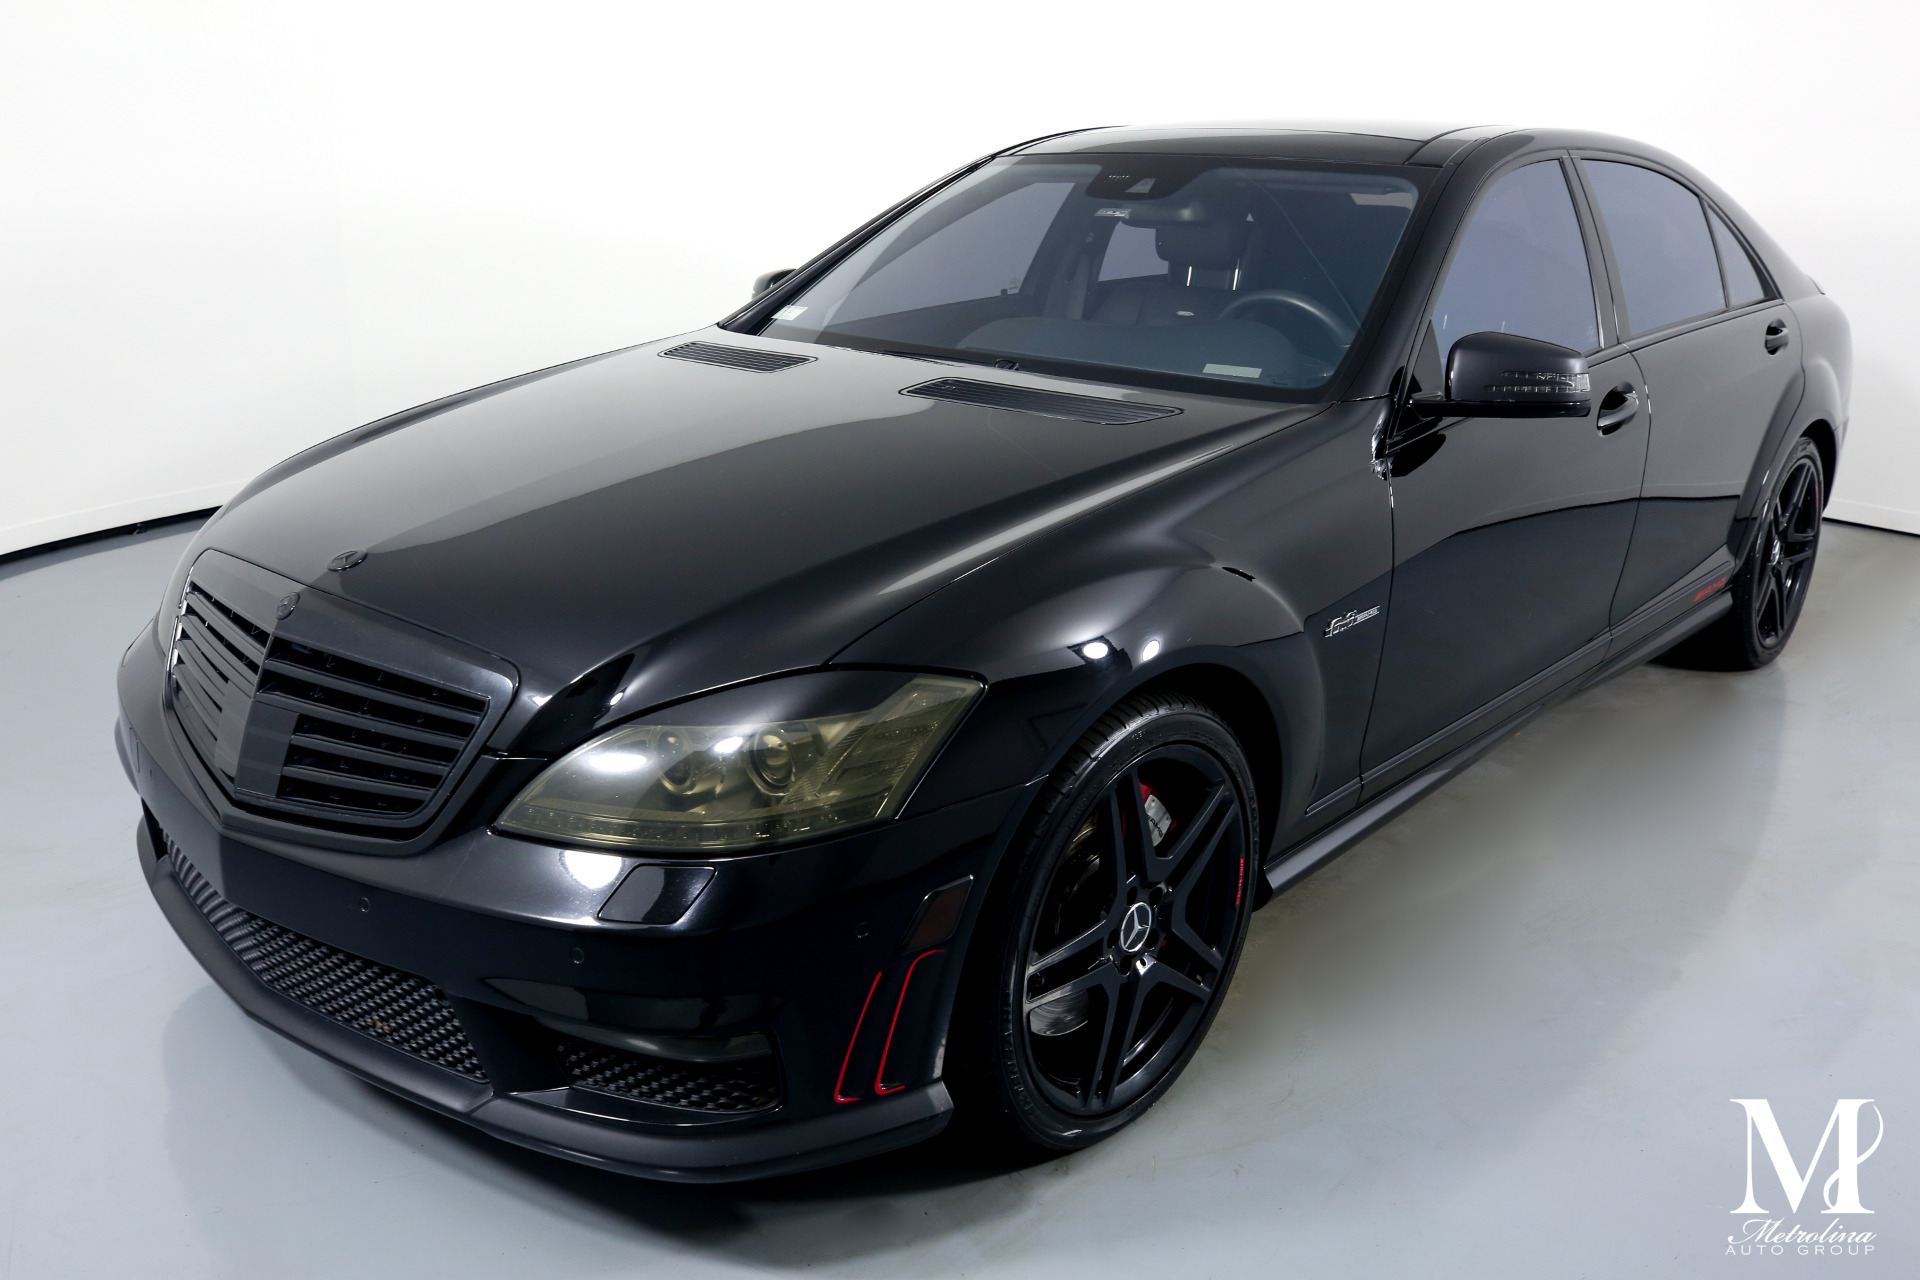 Used 2010 Mercedes-Benz S-Class S 63 AMG for sale $34,996 at Metrolina Auto Group in Charlotte NC 28217 - 4